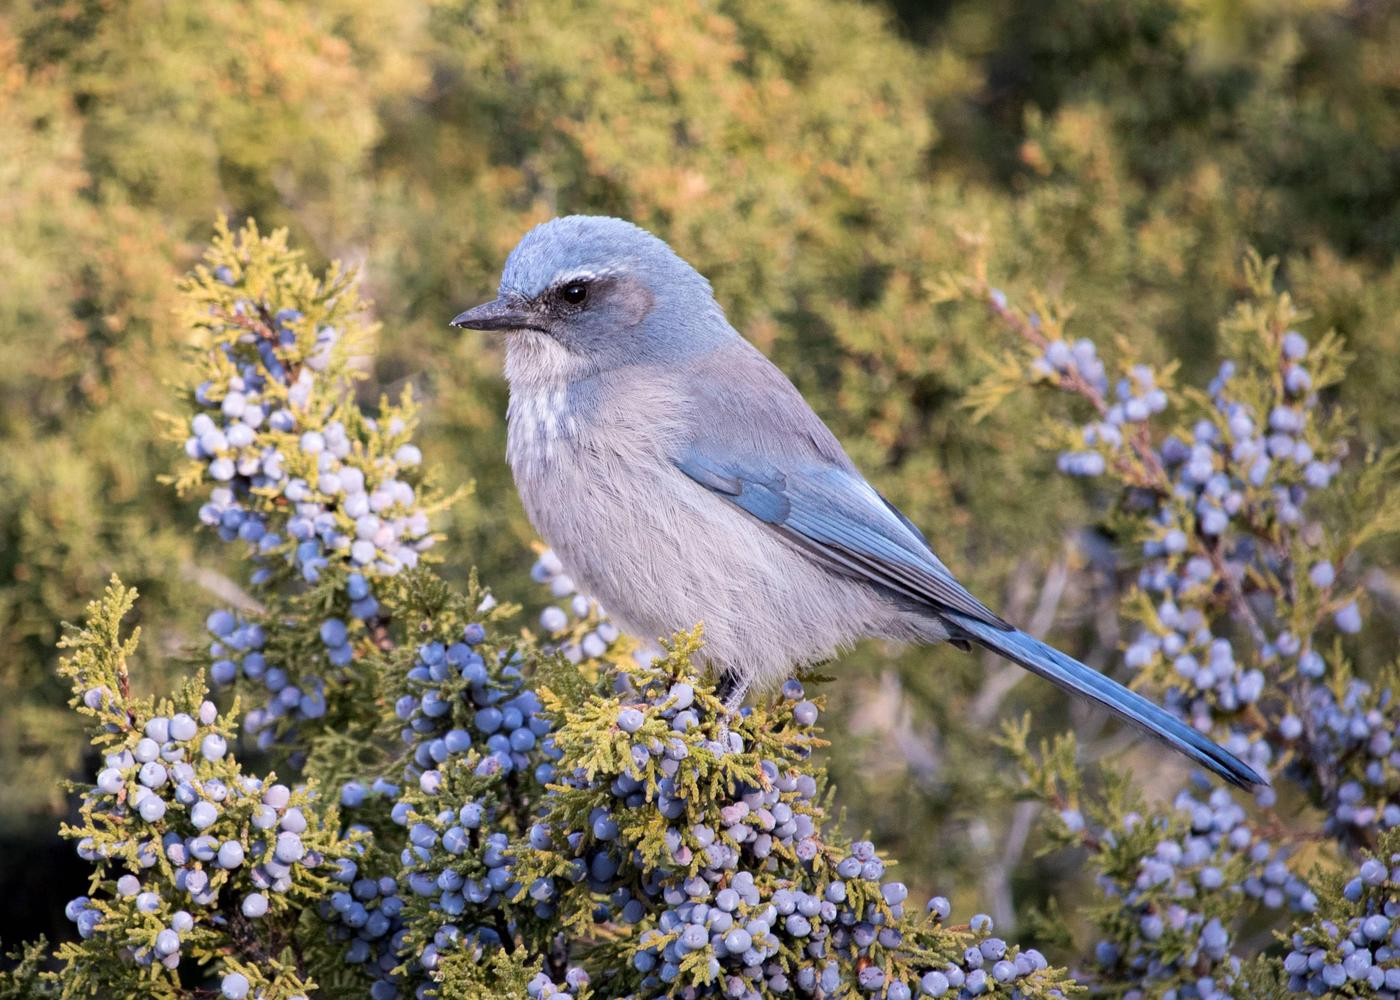 Scrub jay in Kasha-Katuwe Tent Rocks National Monument